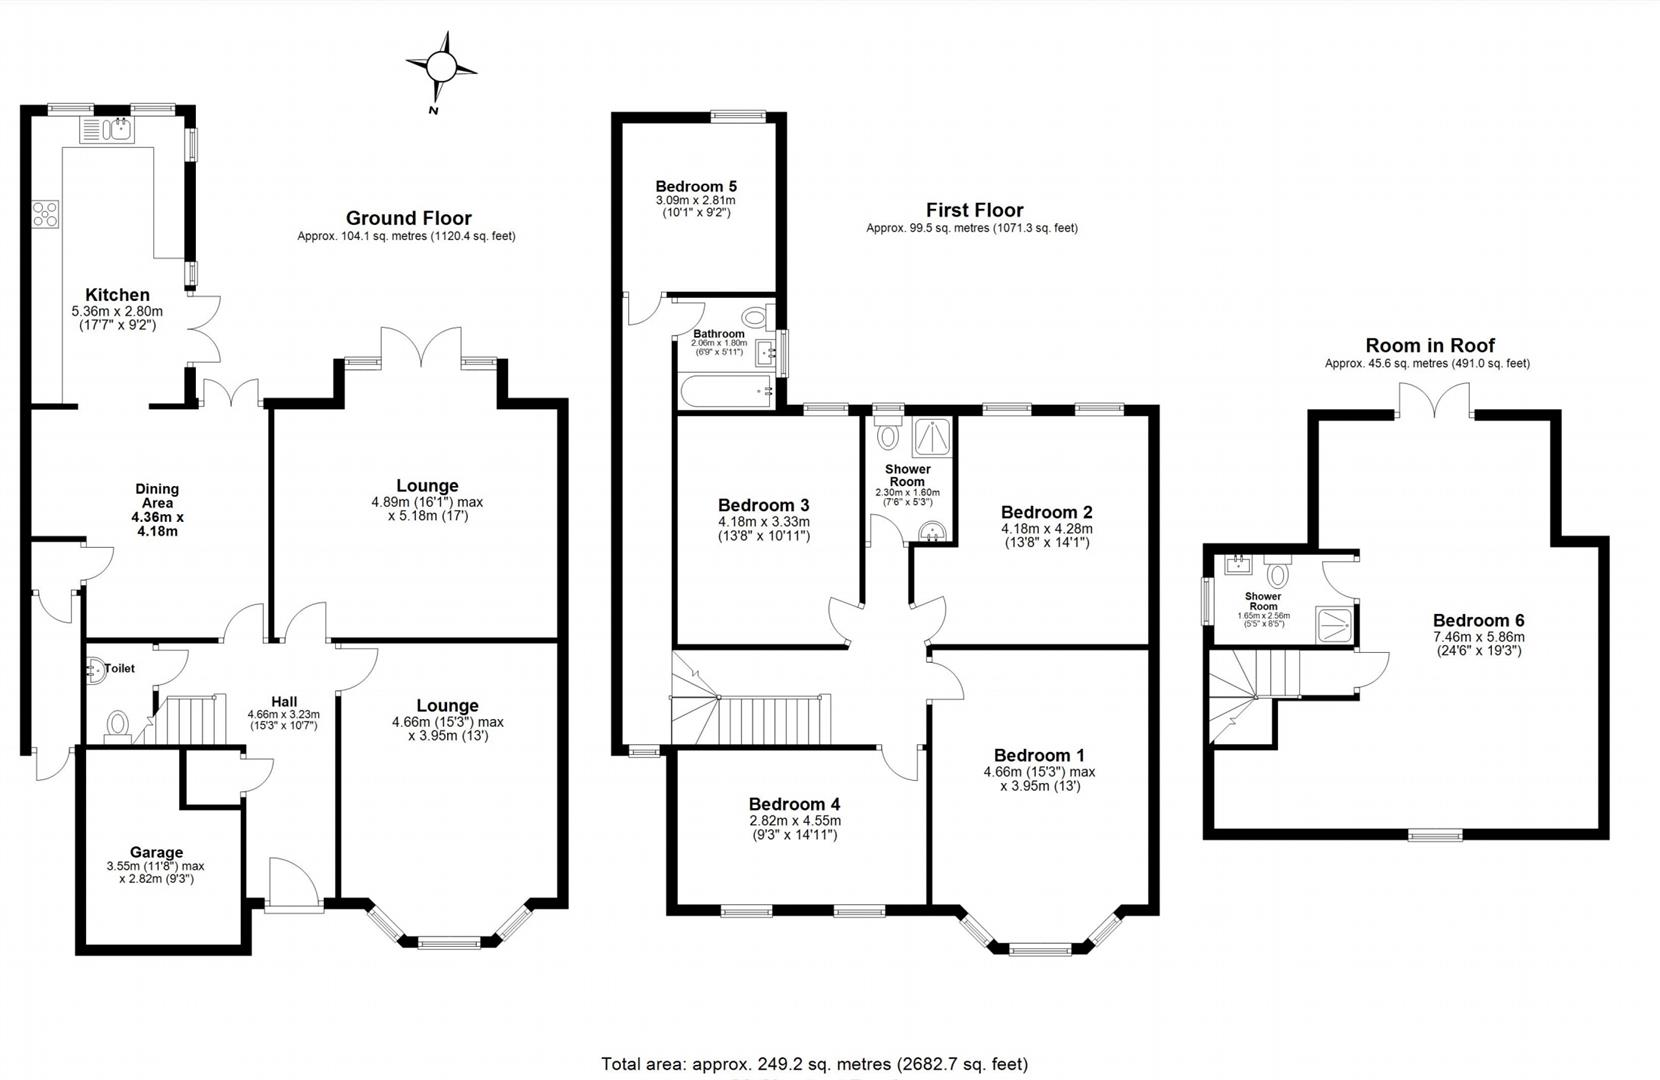 28 Chestnut Road Floorplan.jpg